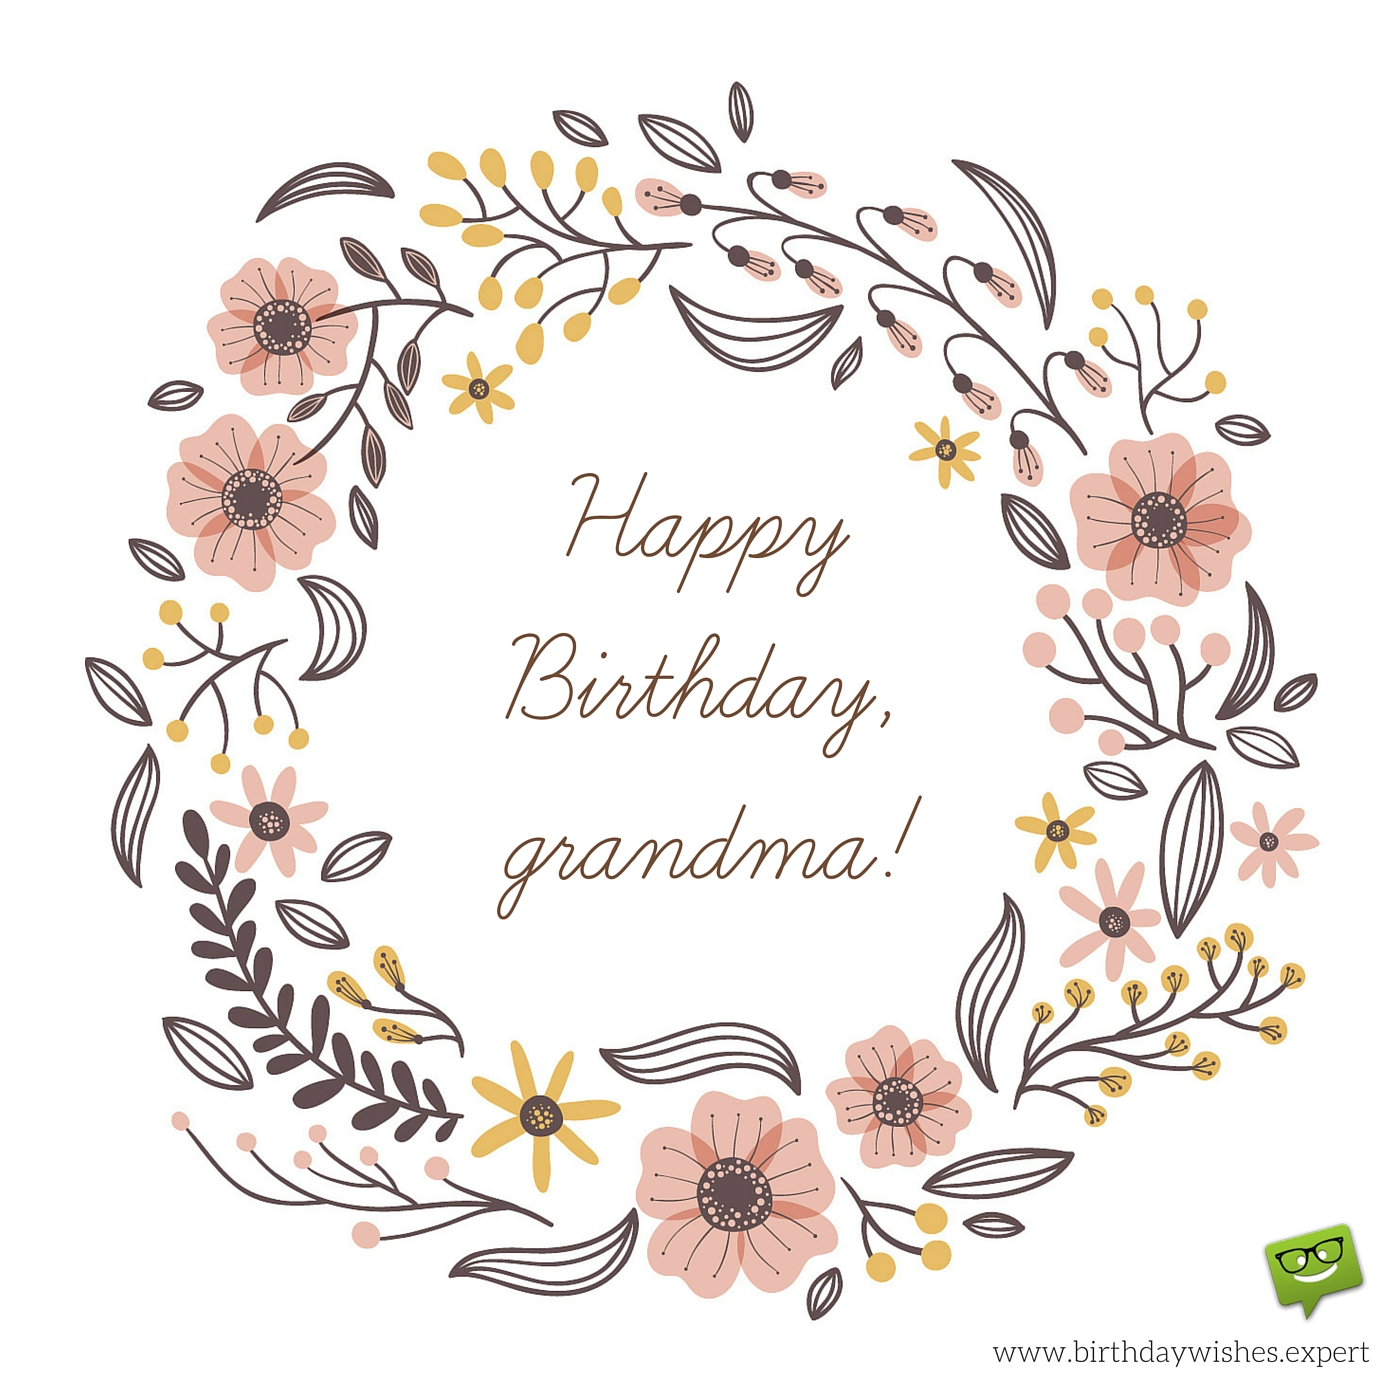 birthday pictures to draw on a birthday card ; 75eec314865178a0806c5573fe9d347e